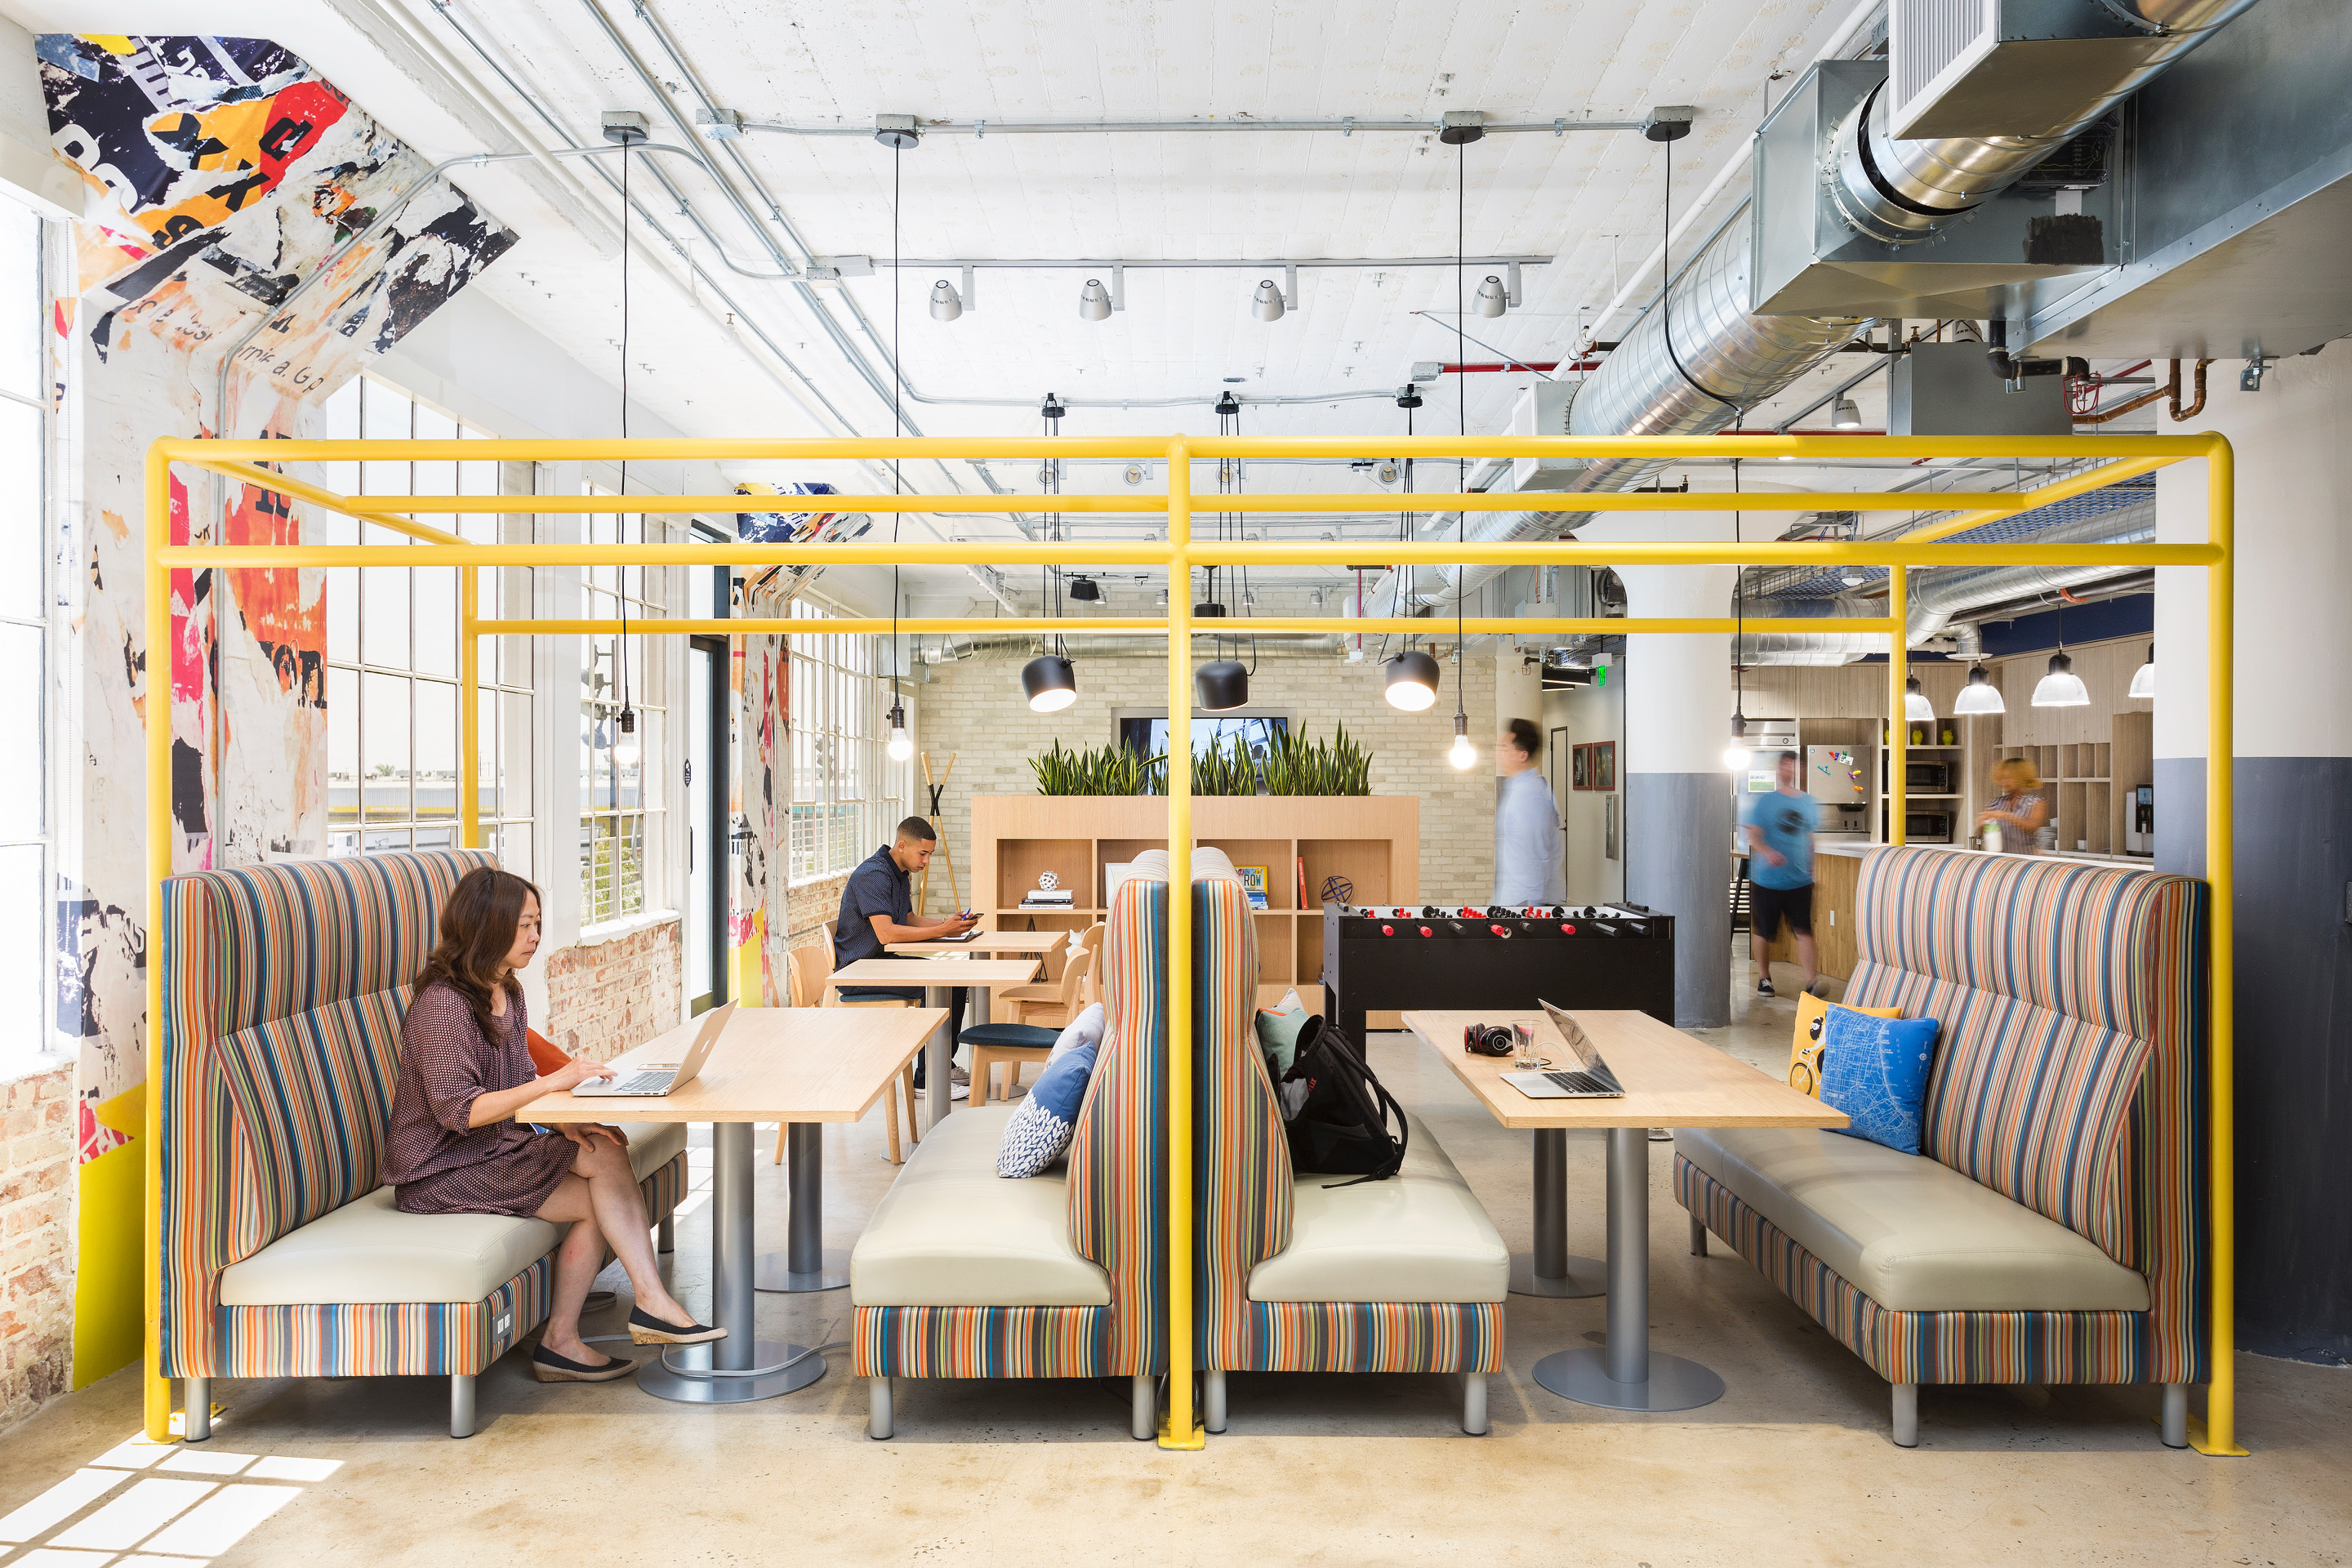 Spaces is one coworking concept expanding across the country. Photo: IWG